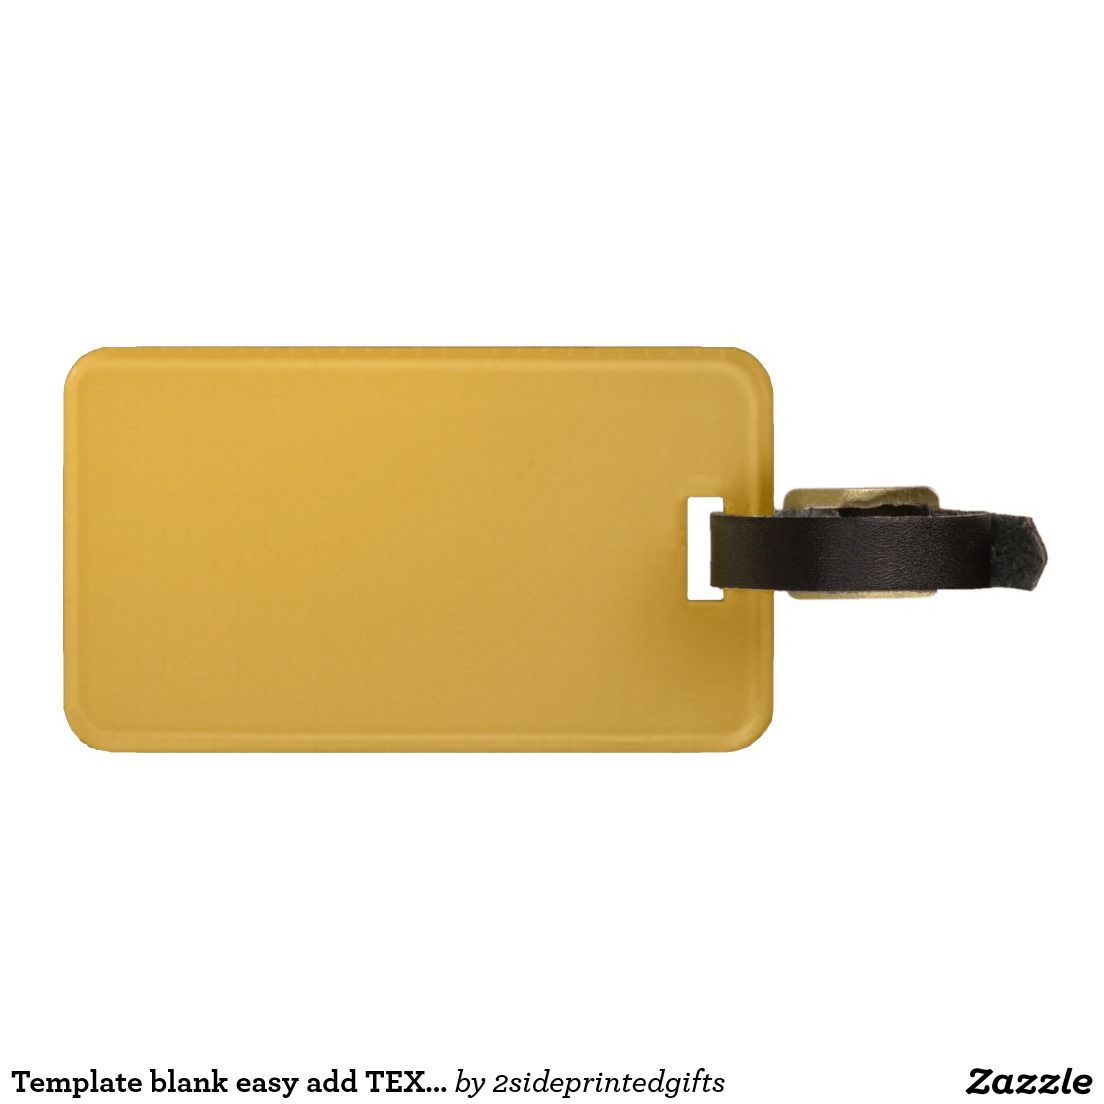 Template blank easy add TEXT PHOTO JPG IMAGE FUN Luggage Tag | Text ...